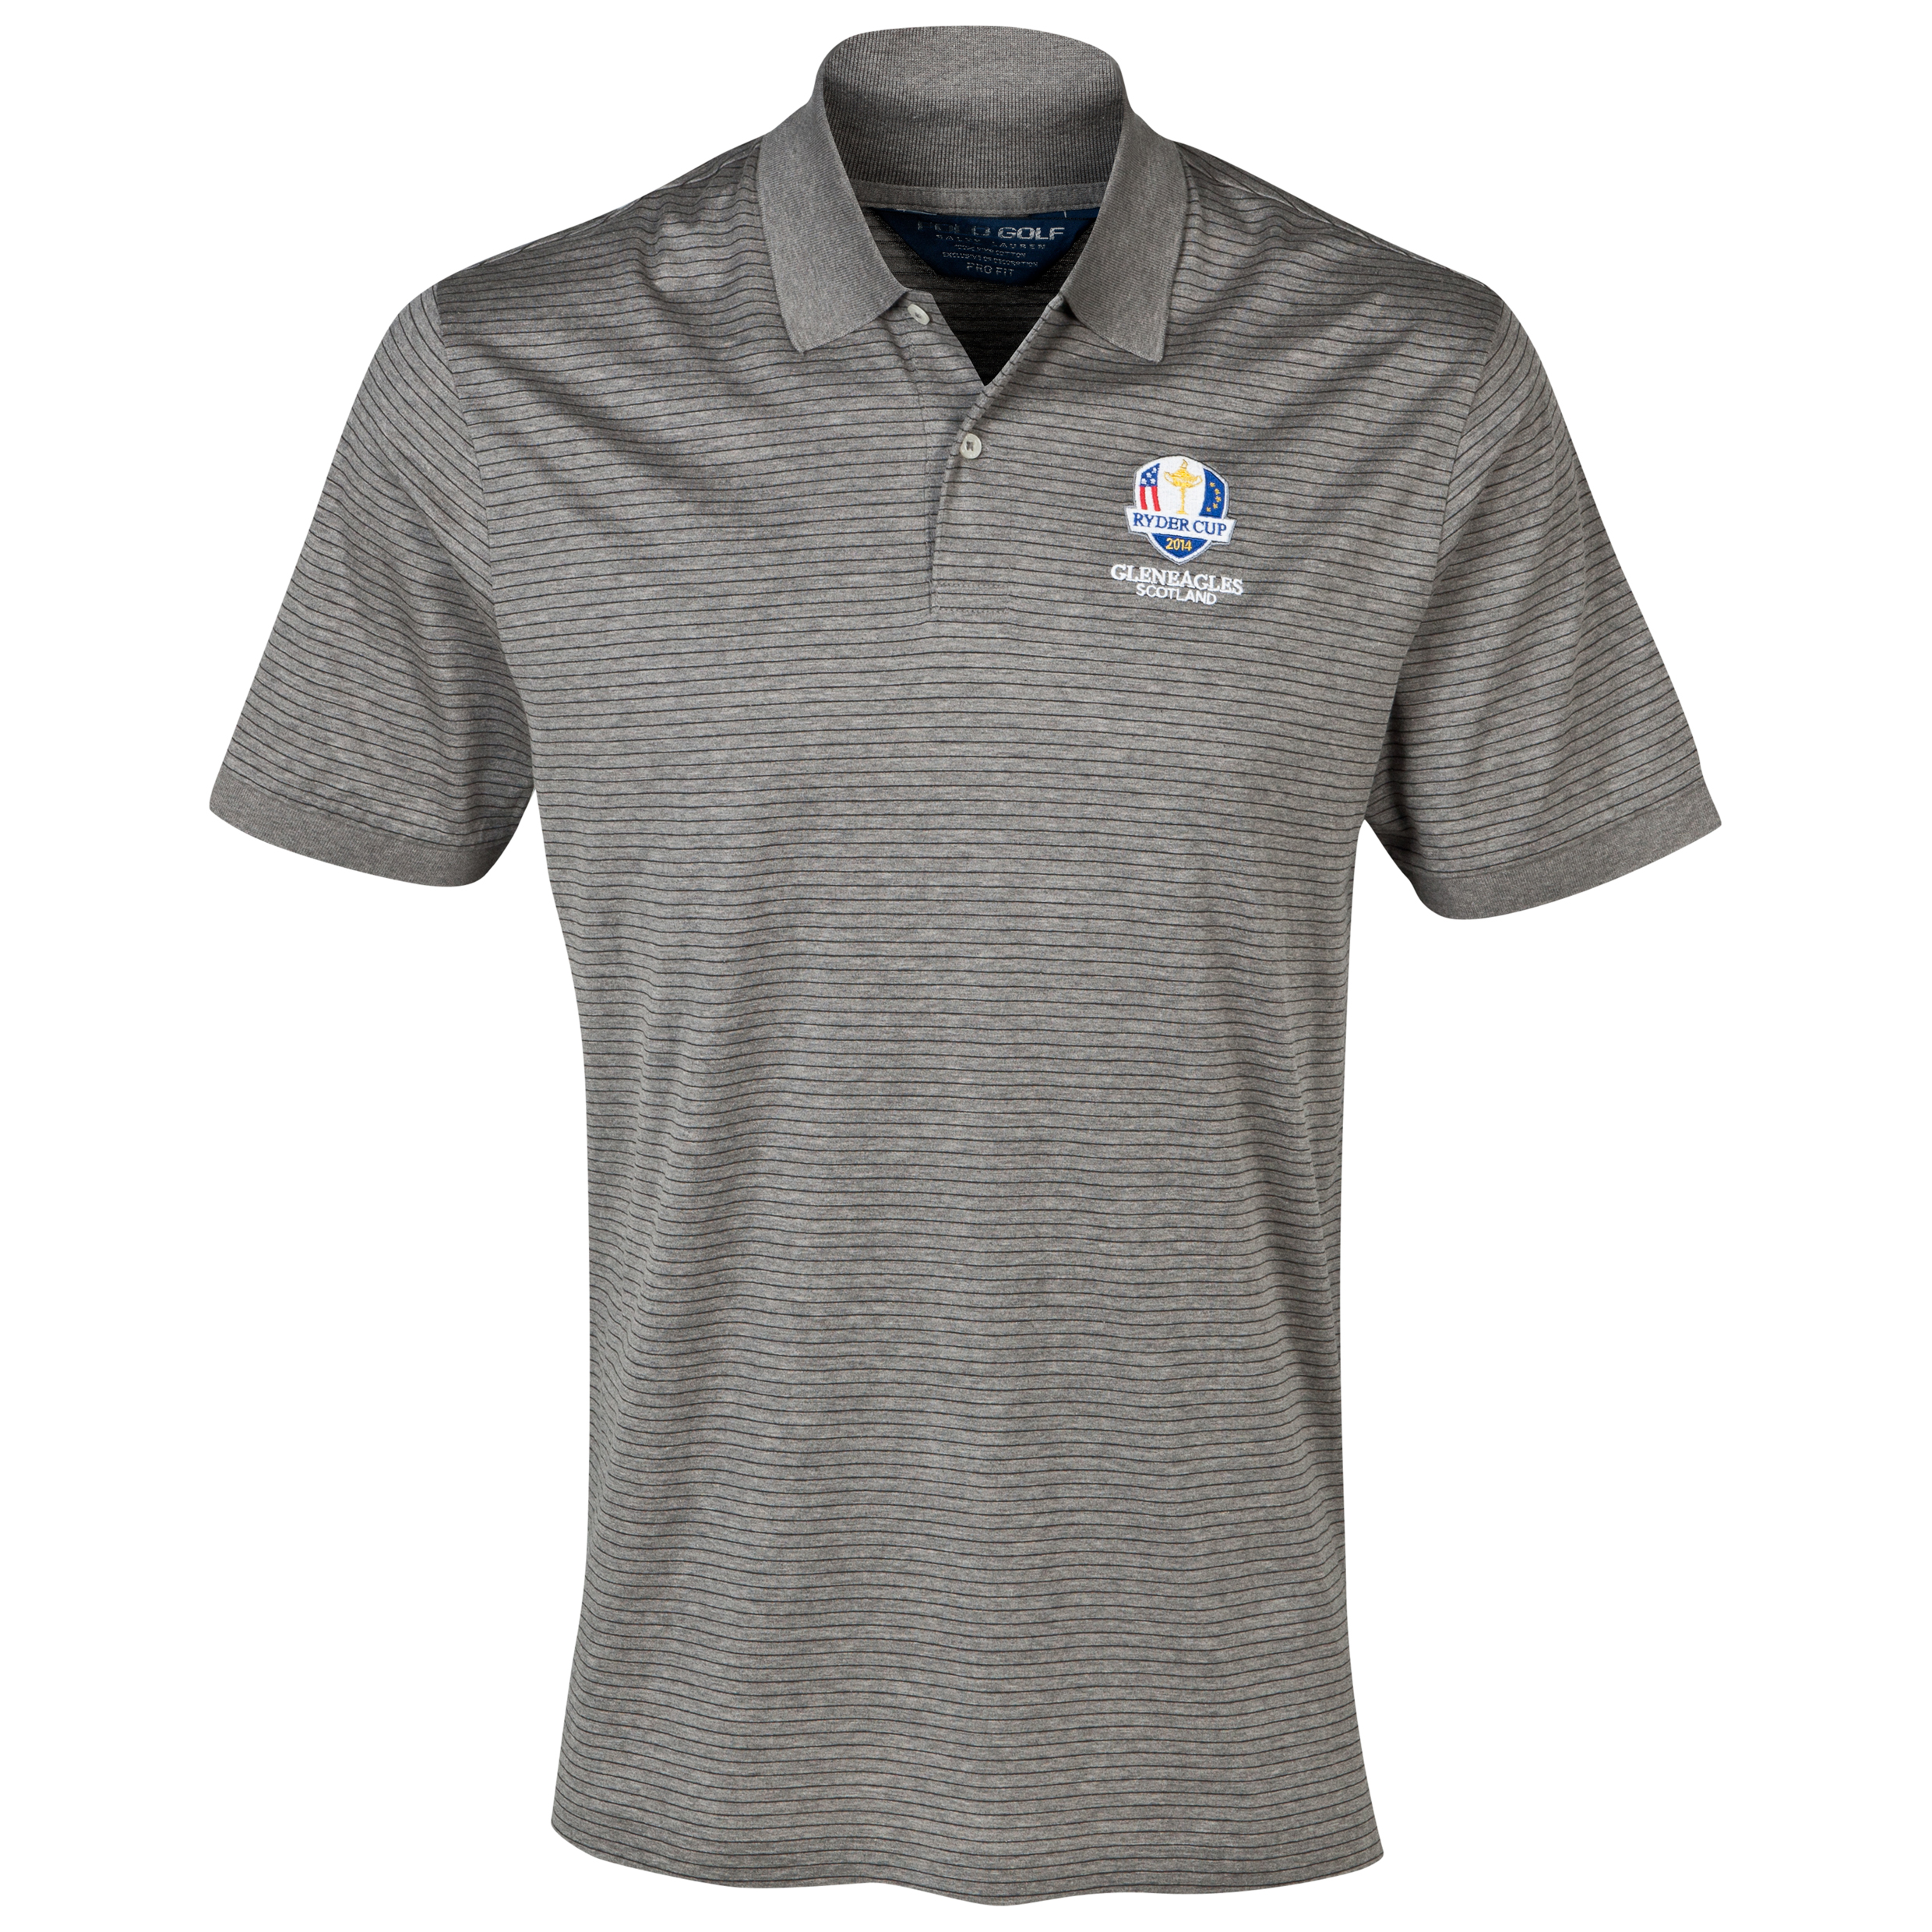 The 2014 Ryder Cup Ralph Lauren Stripe Polo Grey